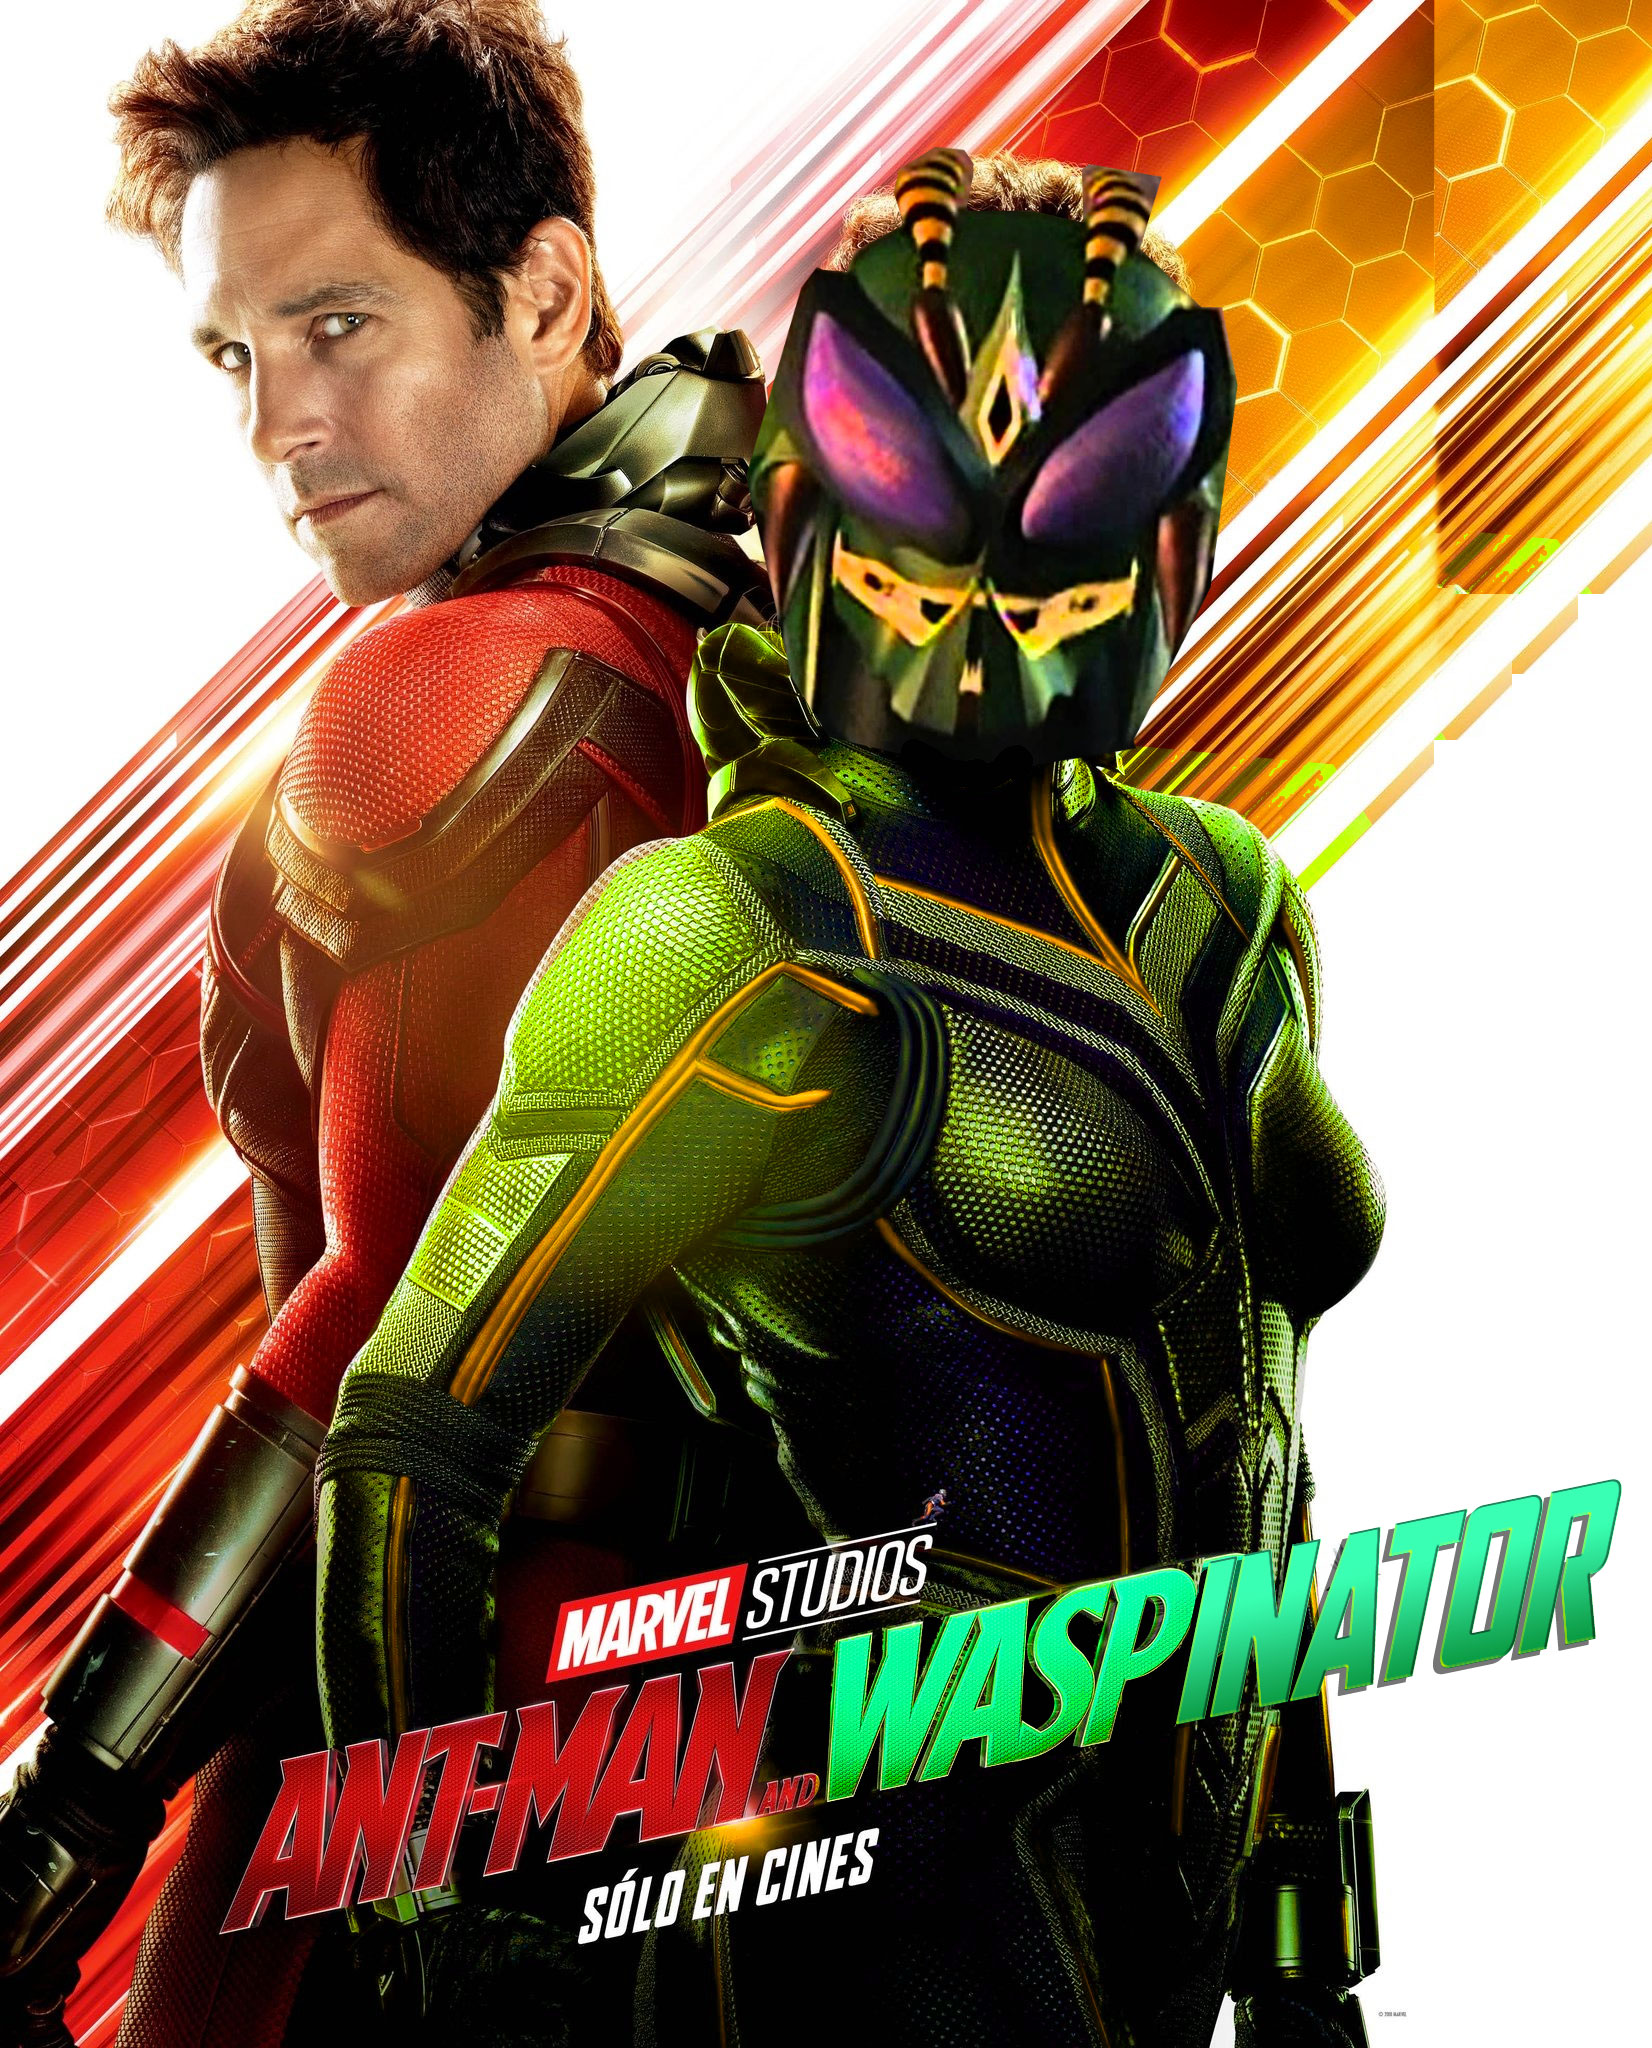 Ant-man and Waspinator parody movie poster